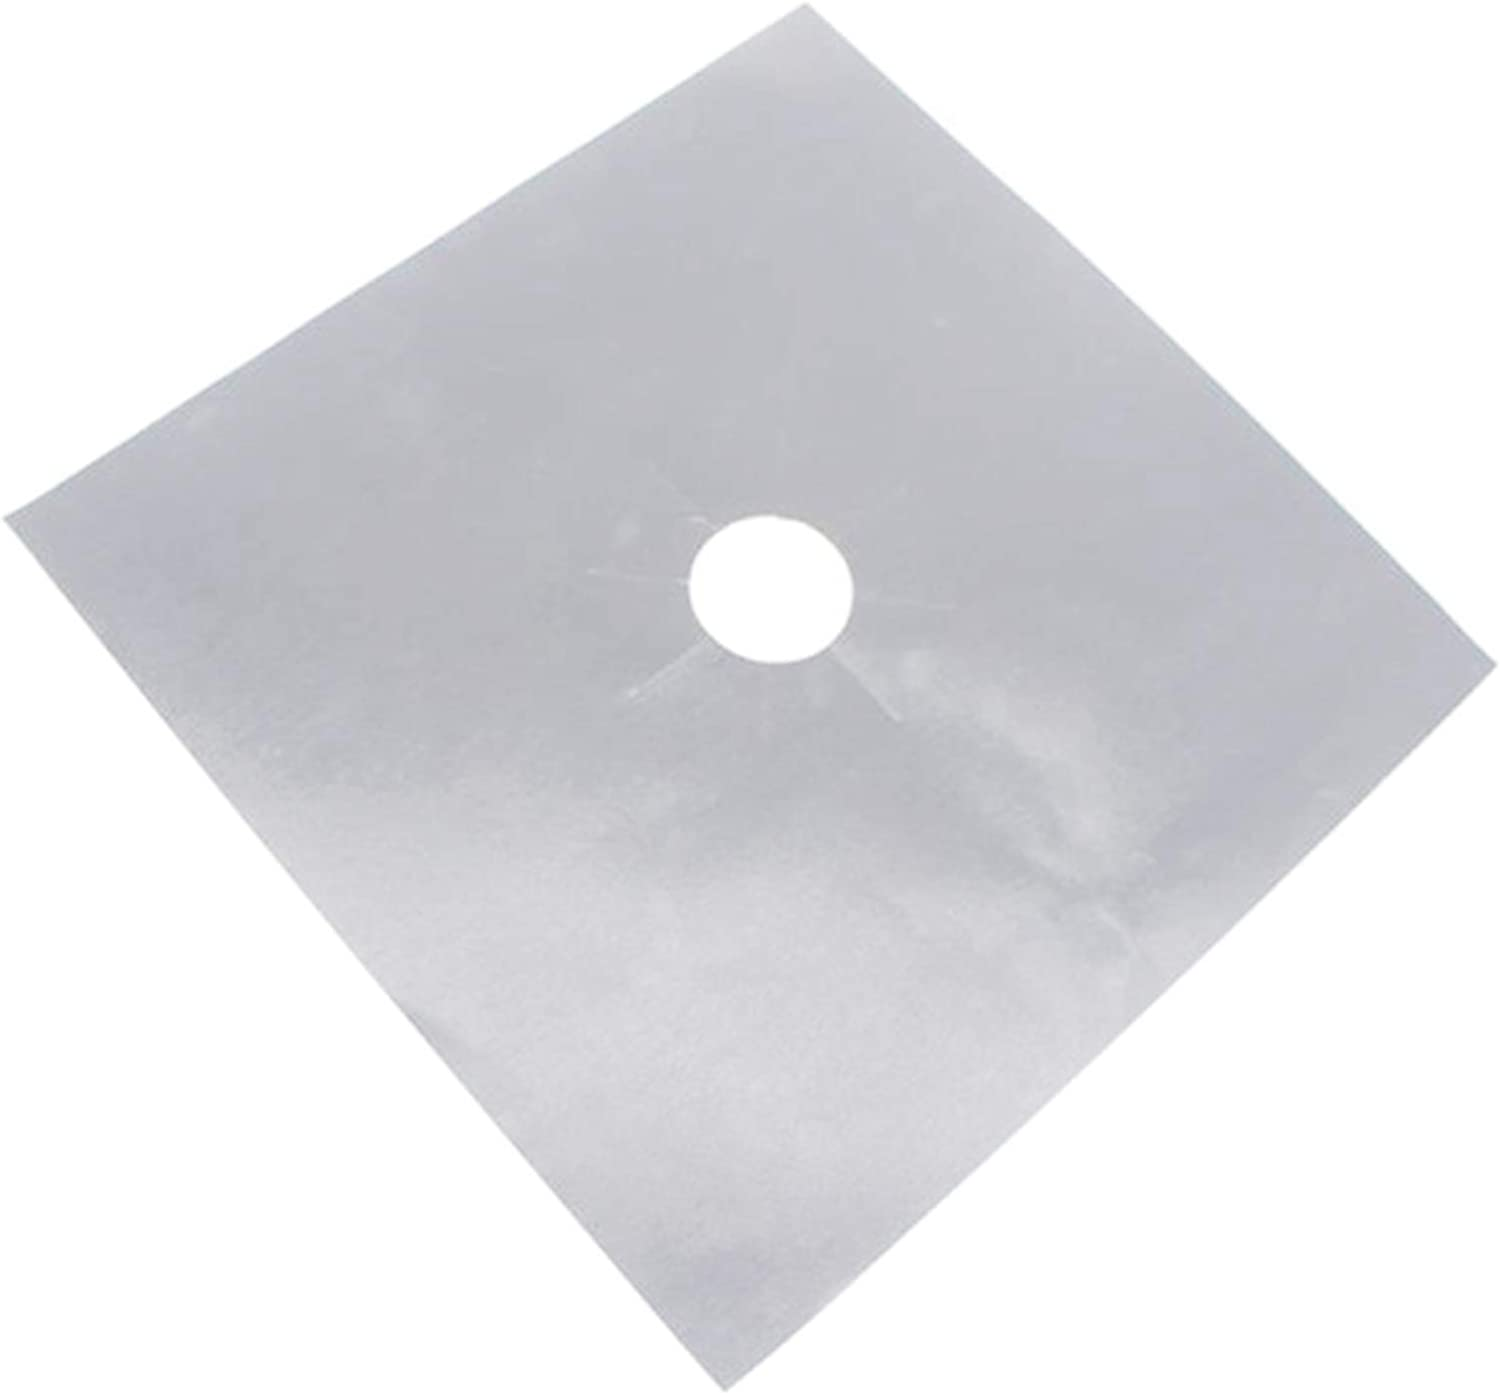 Silver metagio Gas Hob Range Protectors Set of 4 Non-Stick Reusable Cooker Protector 27x27cm Easy to Clean Protection Pad Kitchen Accessories